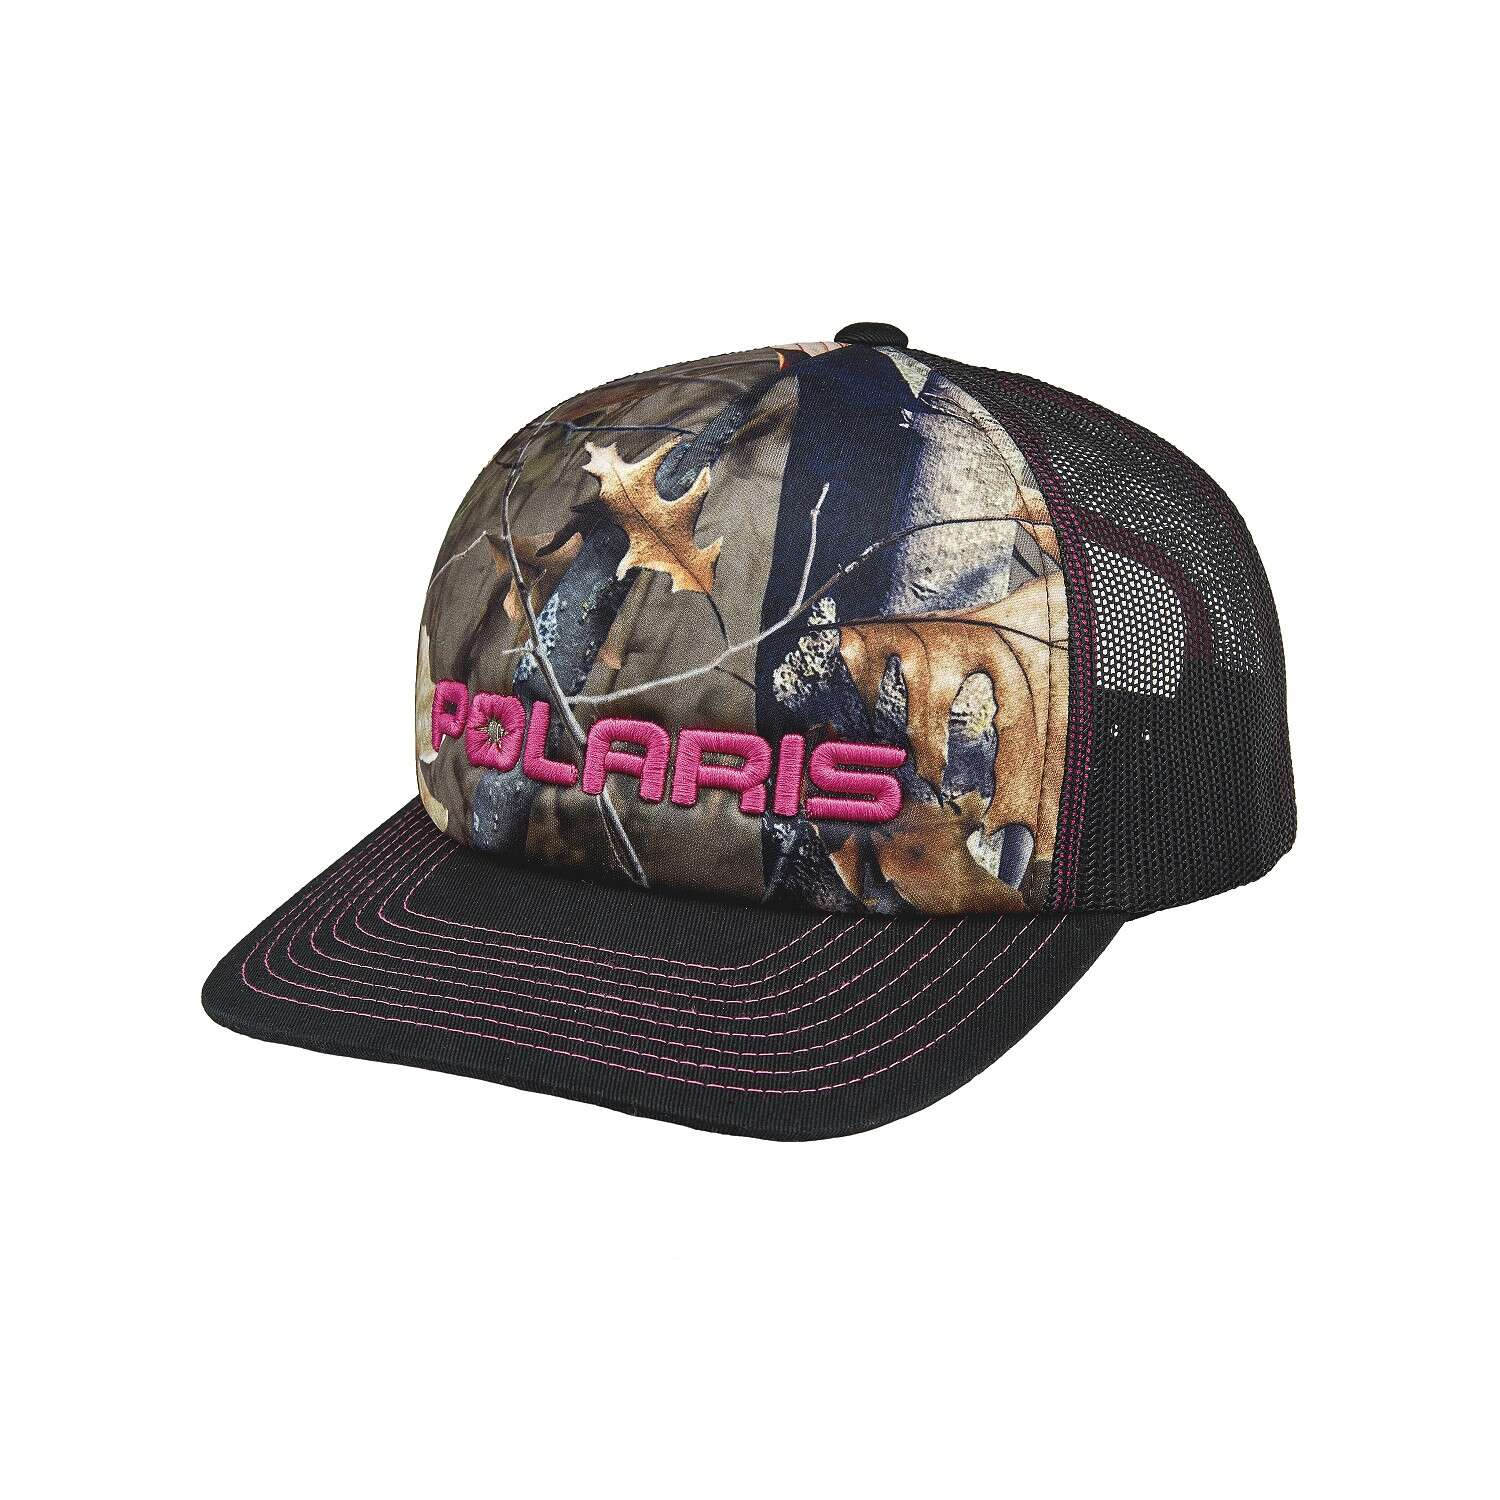 Women's Camo Trucker Cap